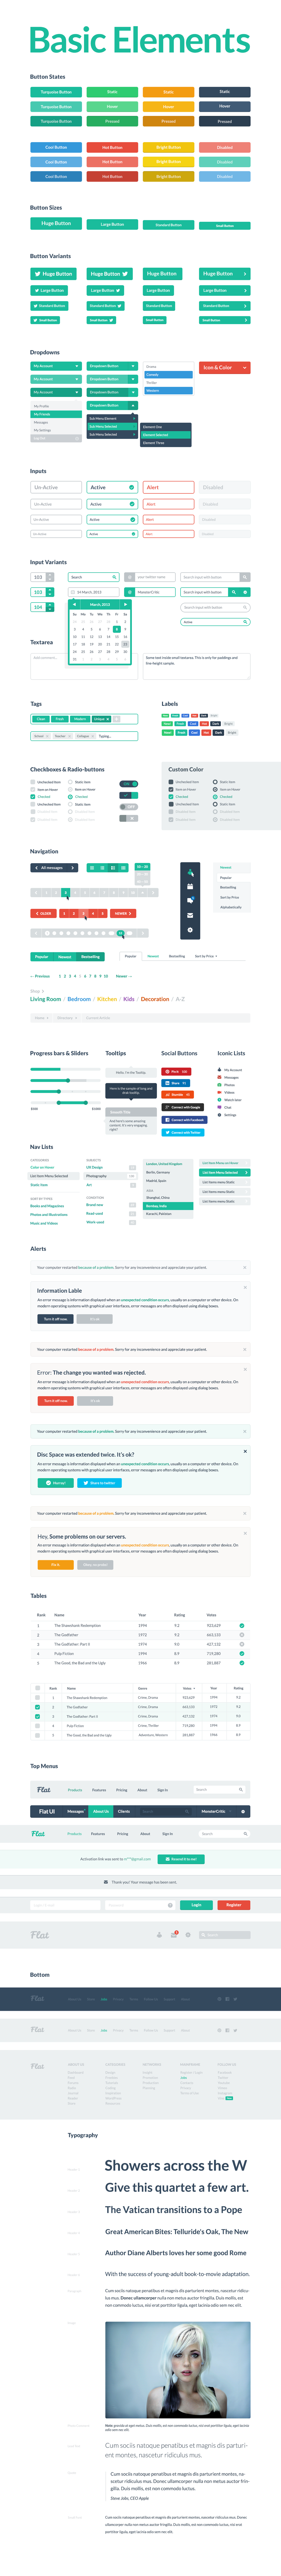 Dribbble - 1.Basic-Elements.png by Designmodo